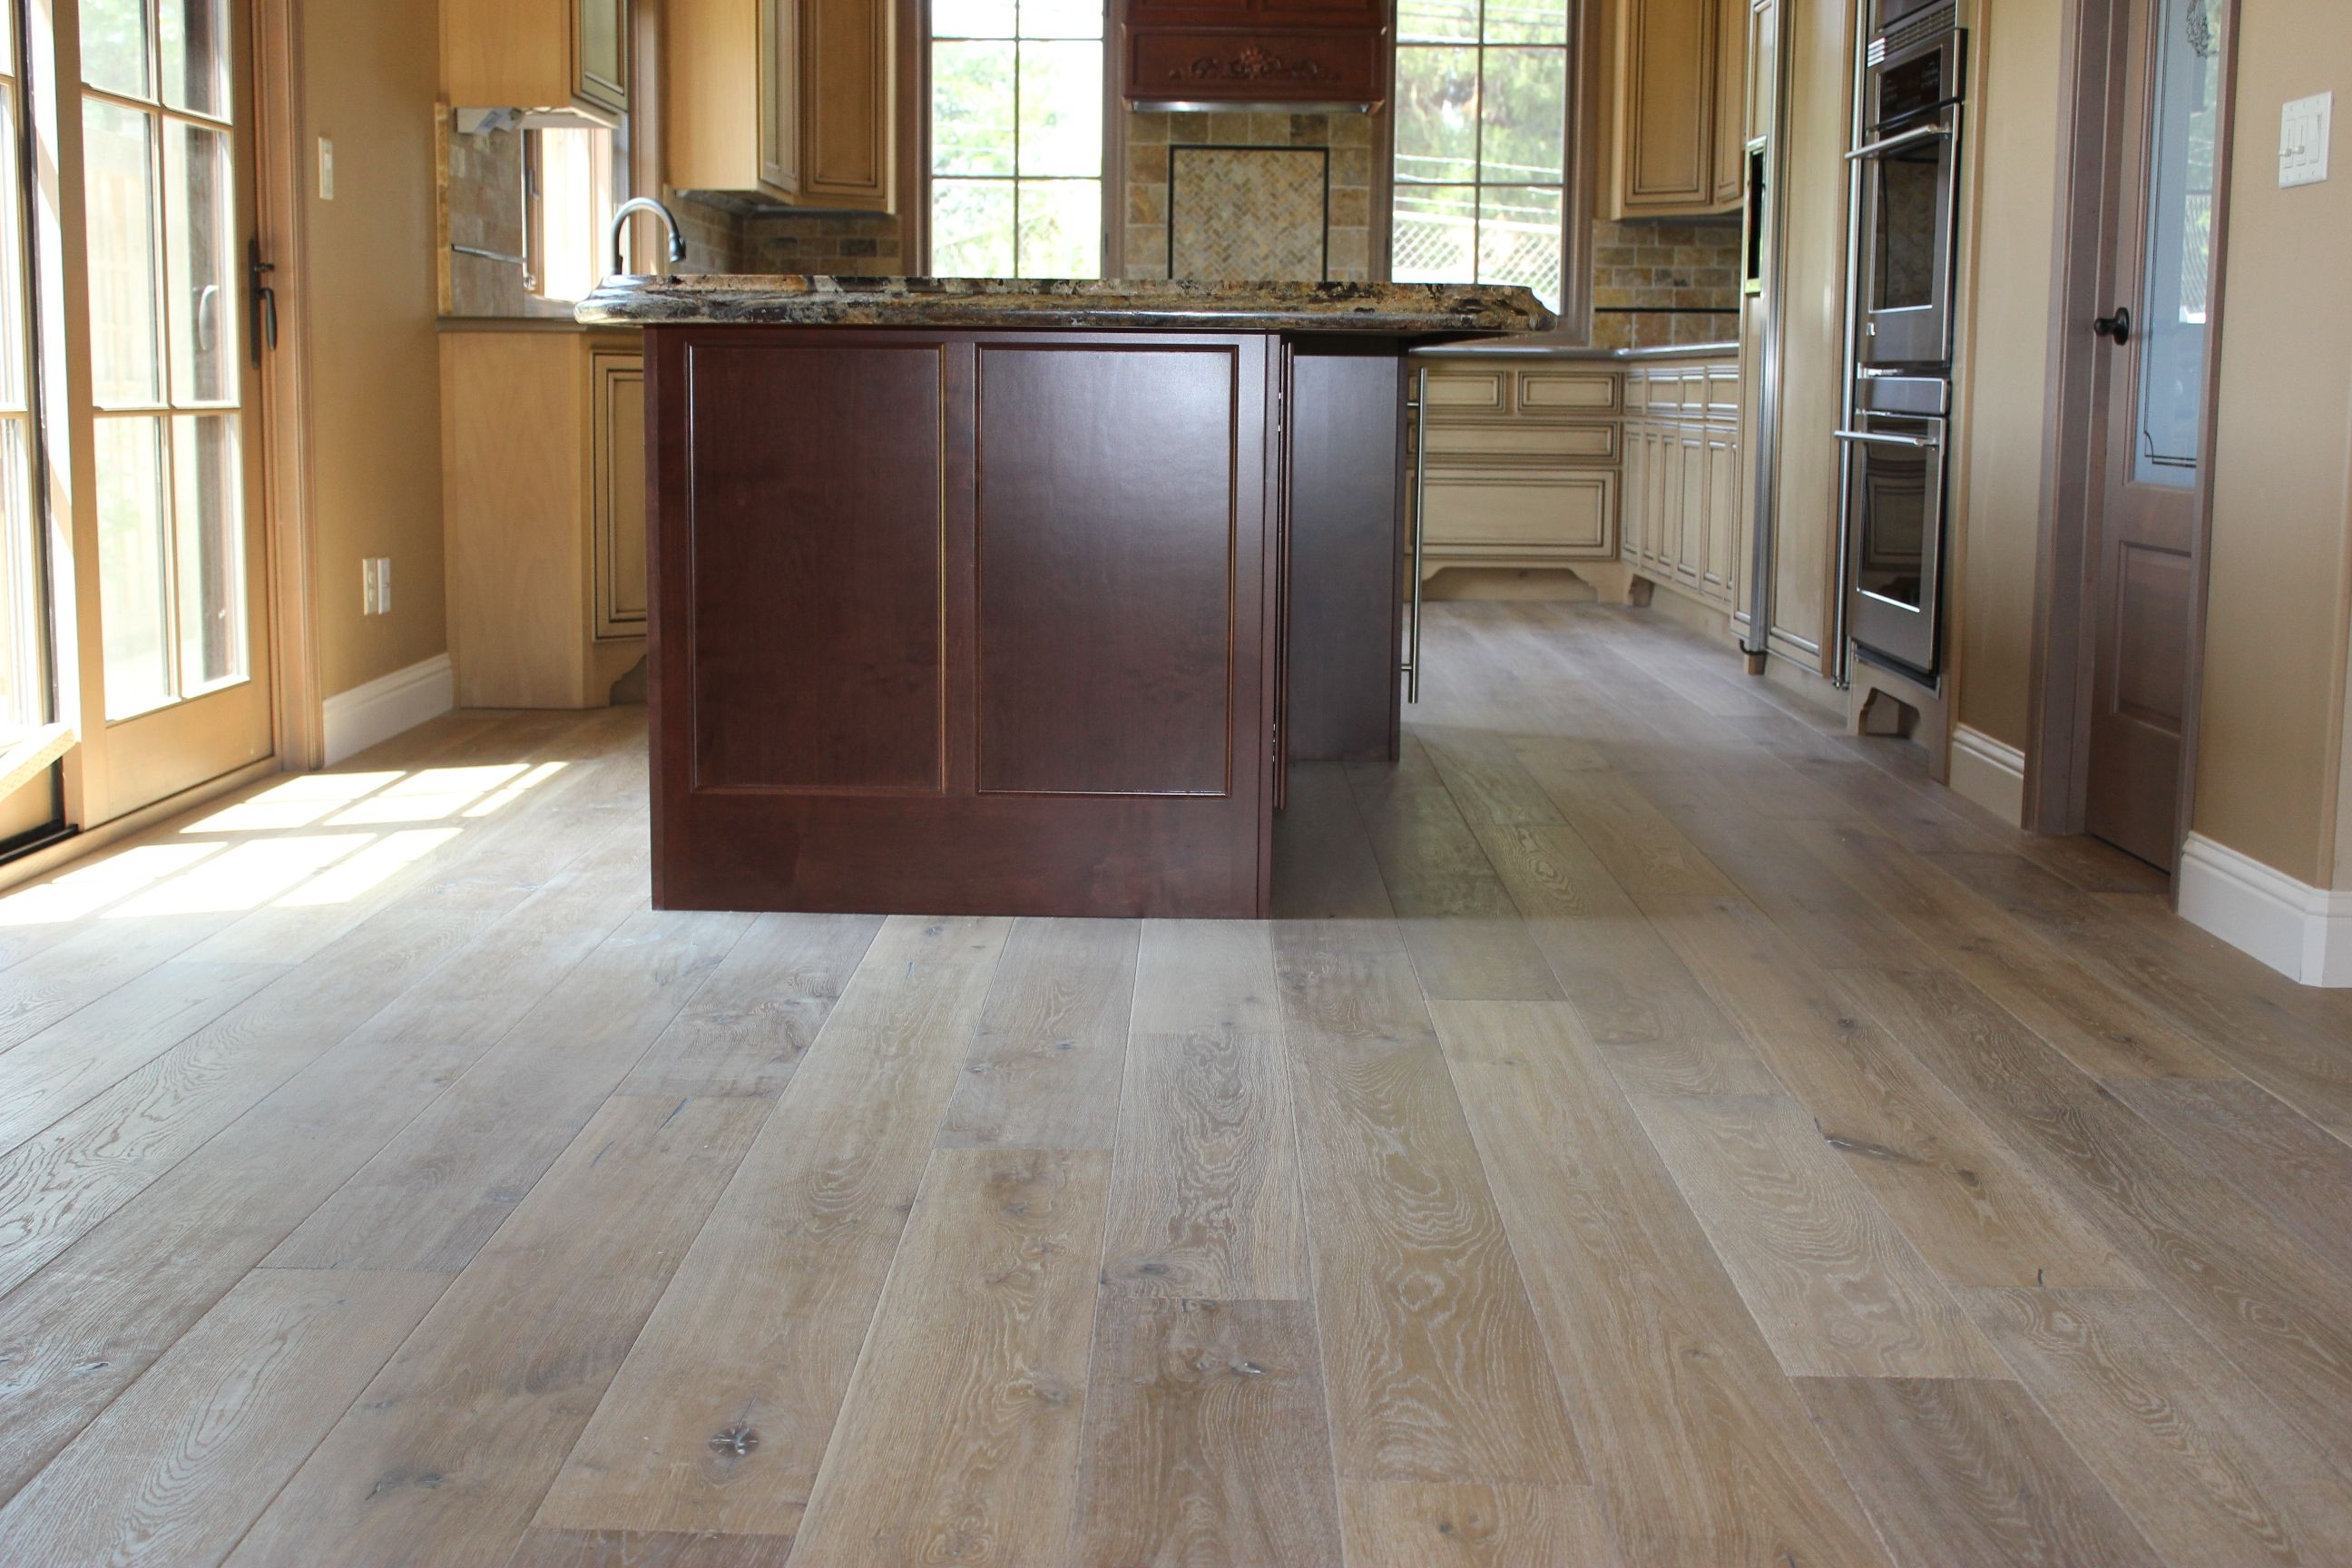 Royal Oak Hardwood, Color: Canewood Installed By Simas.